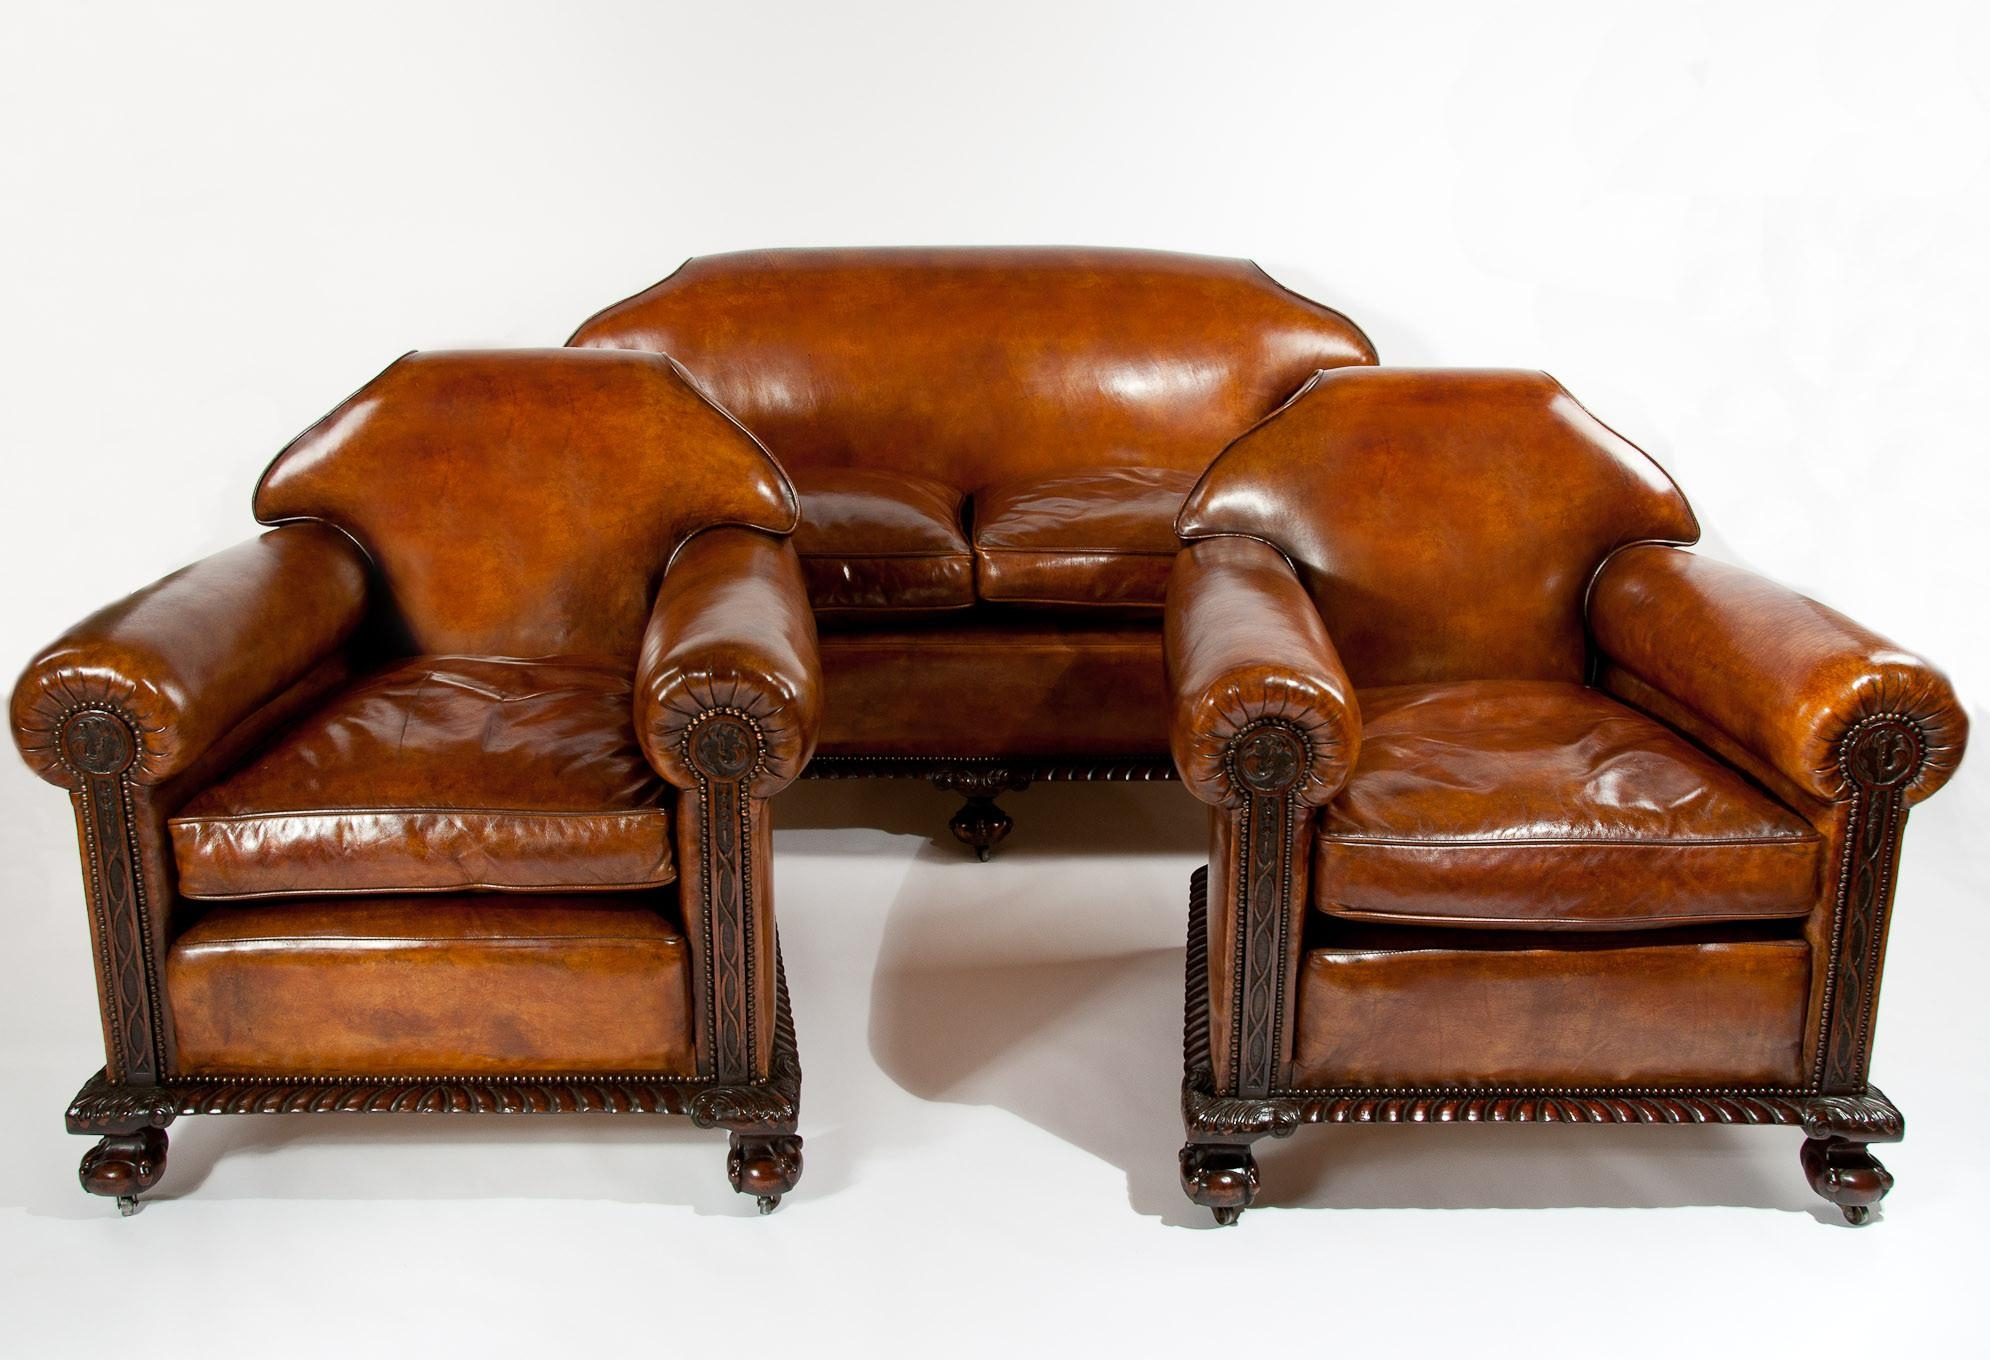 Magnificent Victorian Leather Sofa And Chairs 3 Piece Suite (1880 Within Victorian Leather Sofas (View 17 of 20)